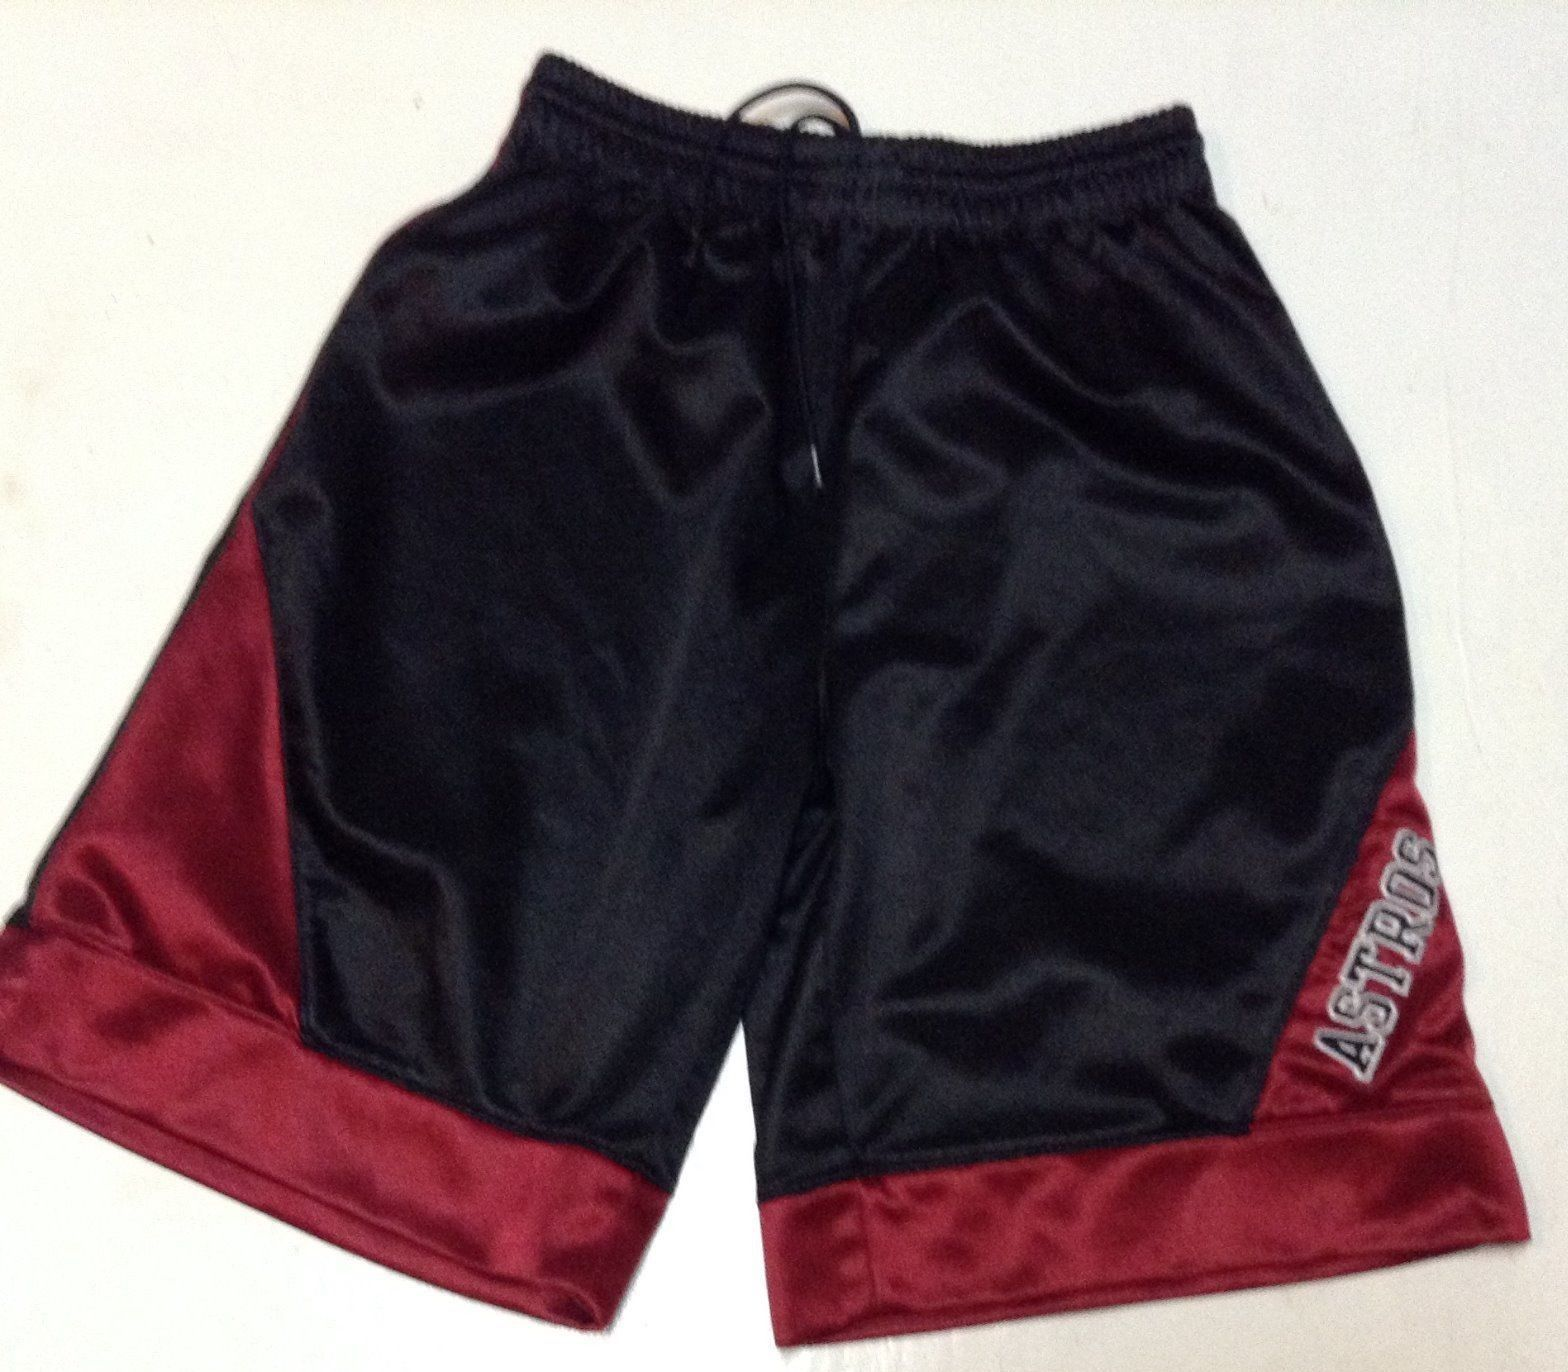 Boys Astros Shorts Black Red Size XL 20 Mighty Mac Sports